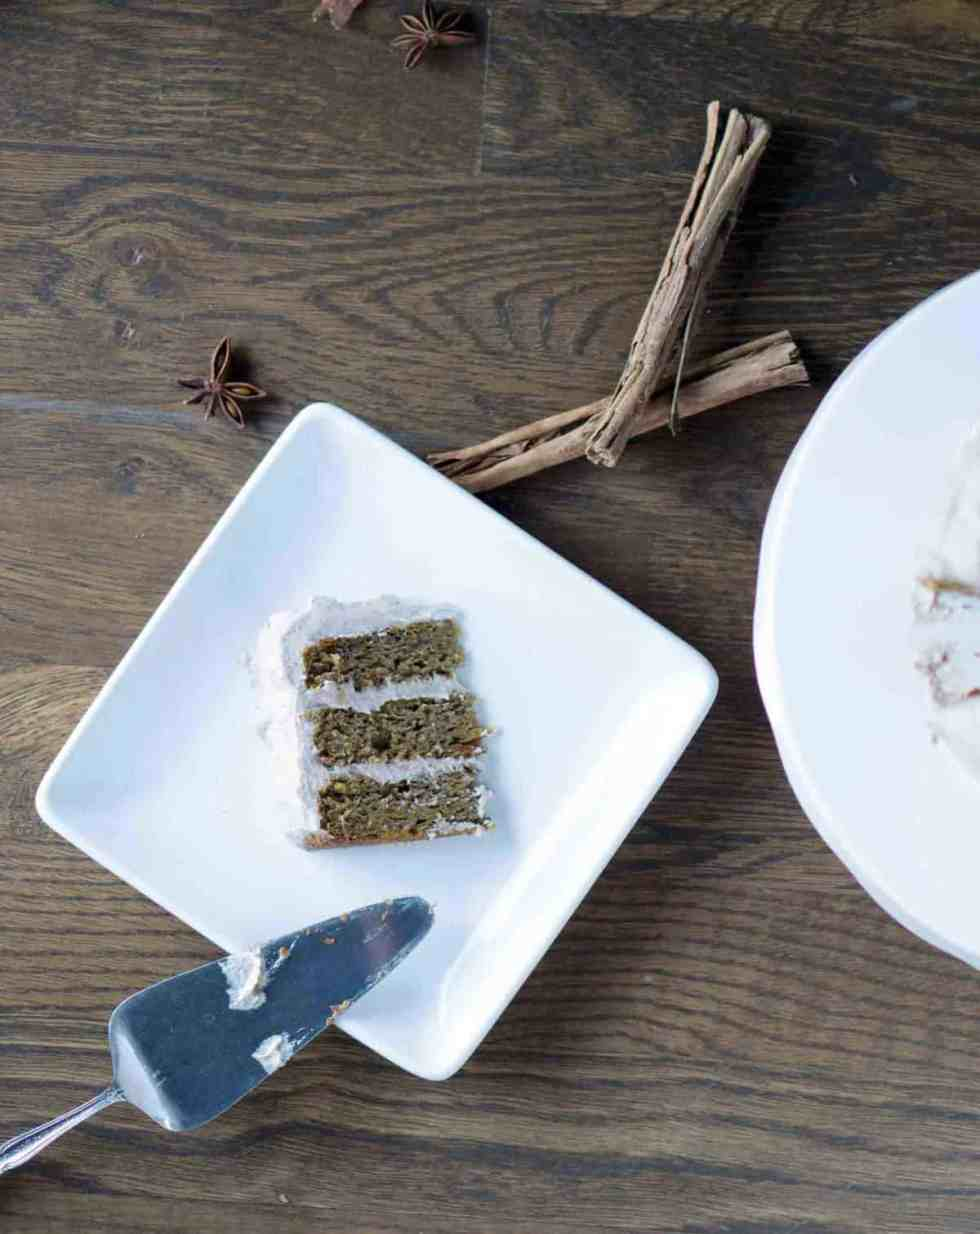 pumpkin spice cake with coconut whipe cream thats gluten free, dairy free, refined sugar free and fluffy delicious